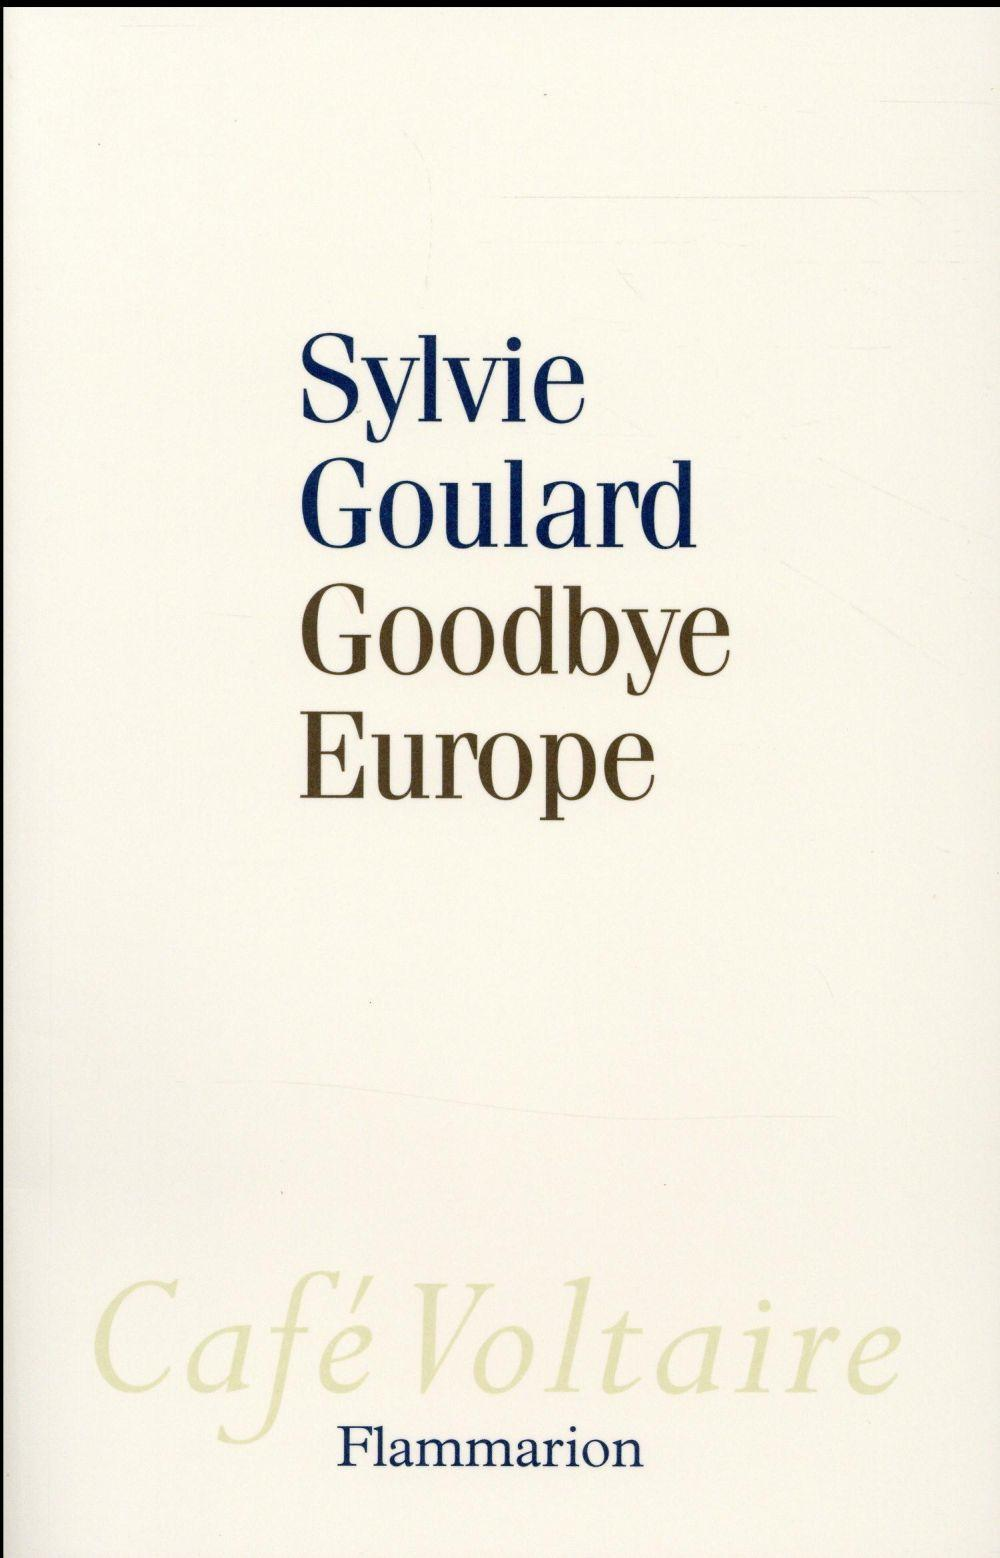 Goodbye europe  - Sylvie Goulard